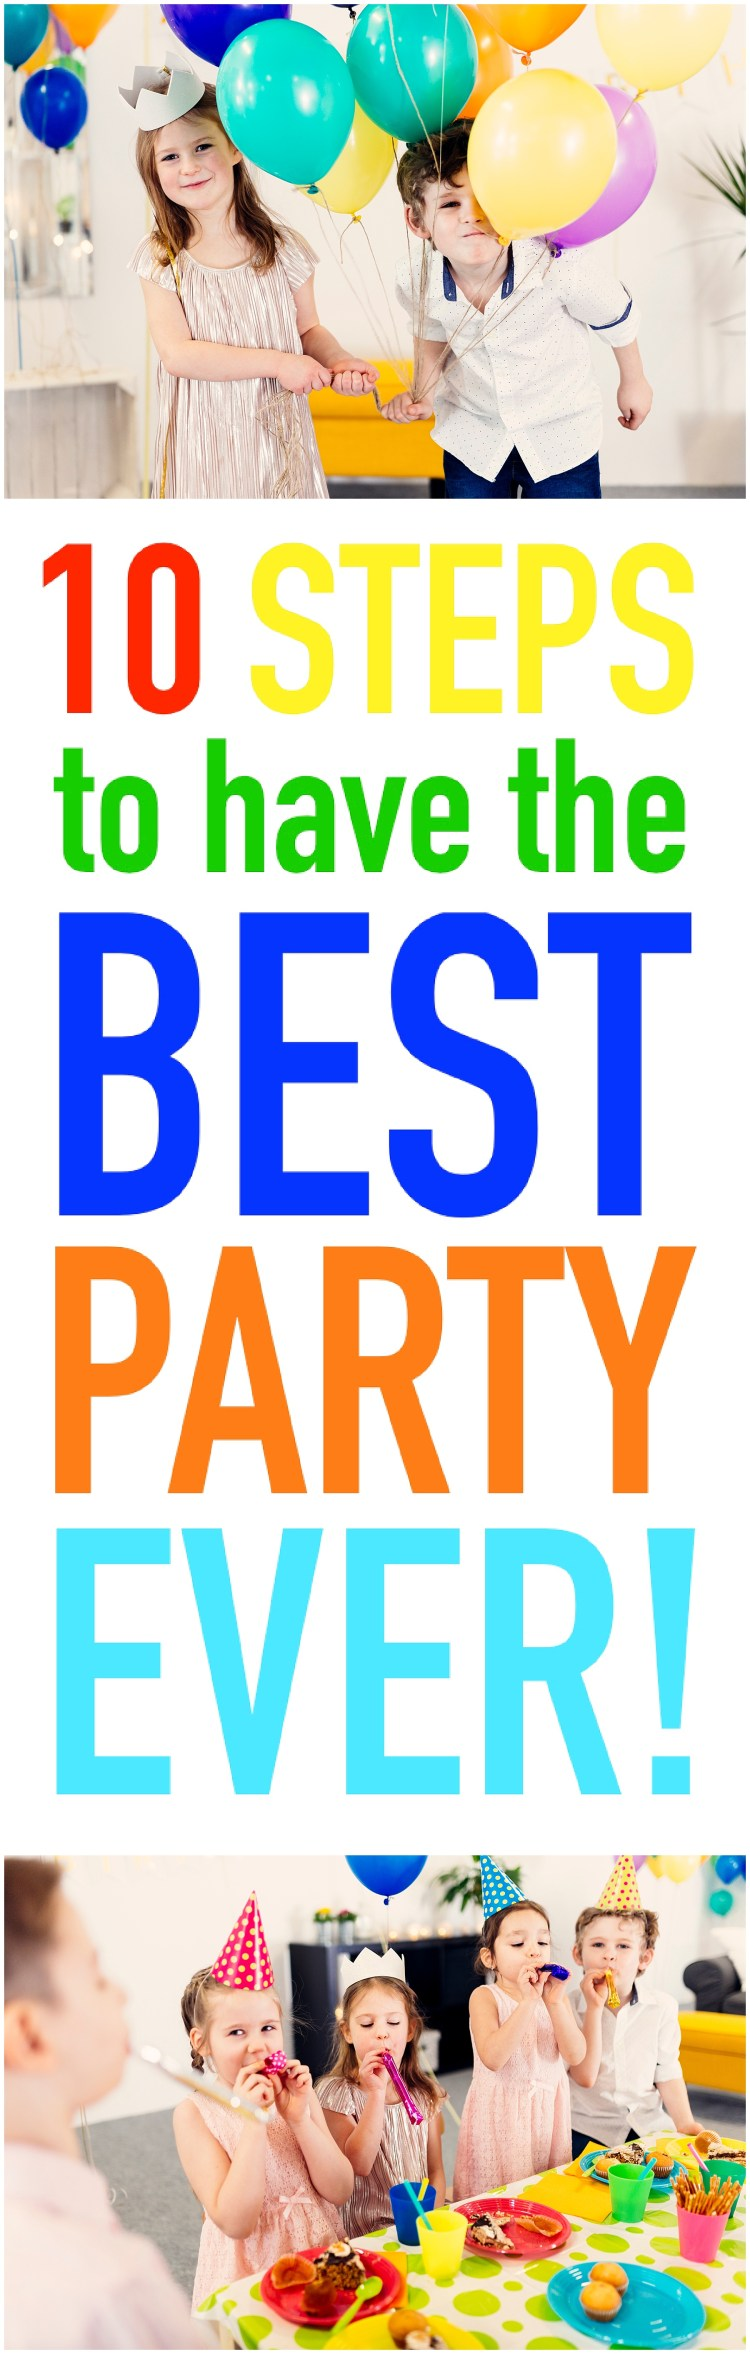 Birthday Party Planning | How to Birthday Party | Party Checklist | Steps to a Great Party | Six Clever Sisters